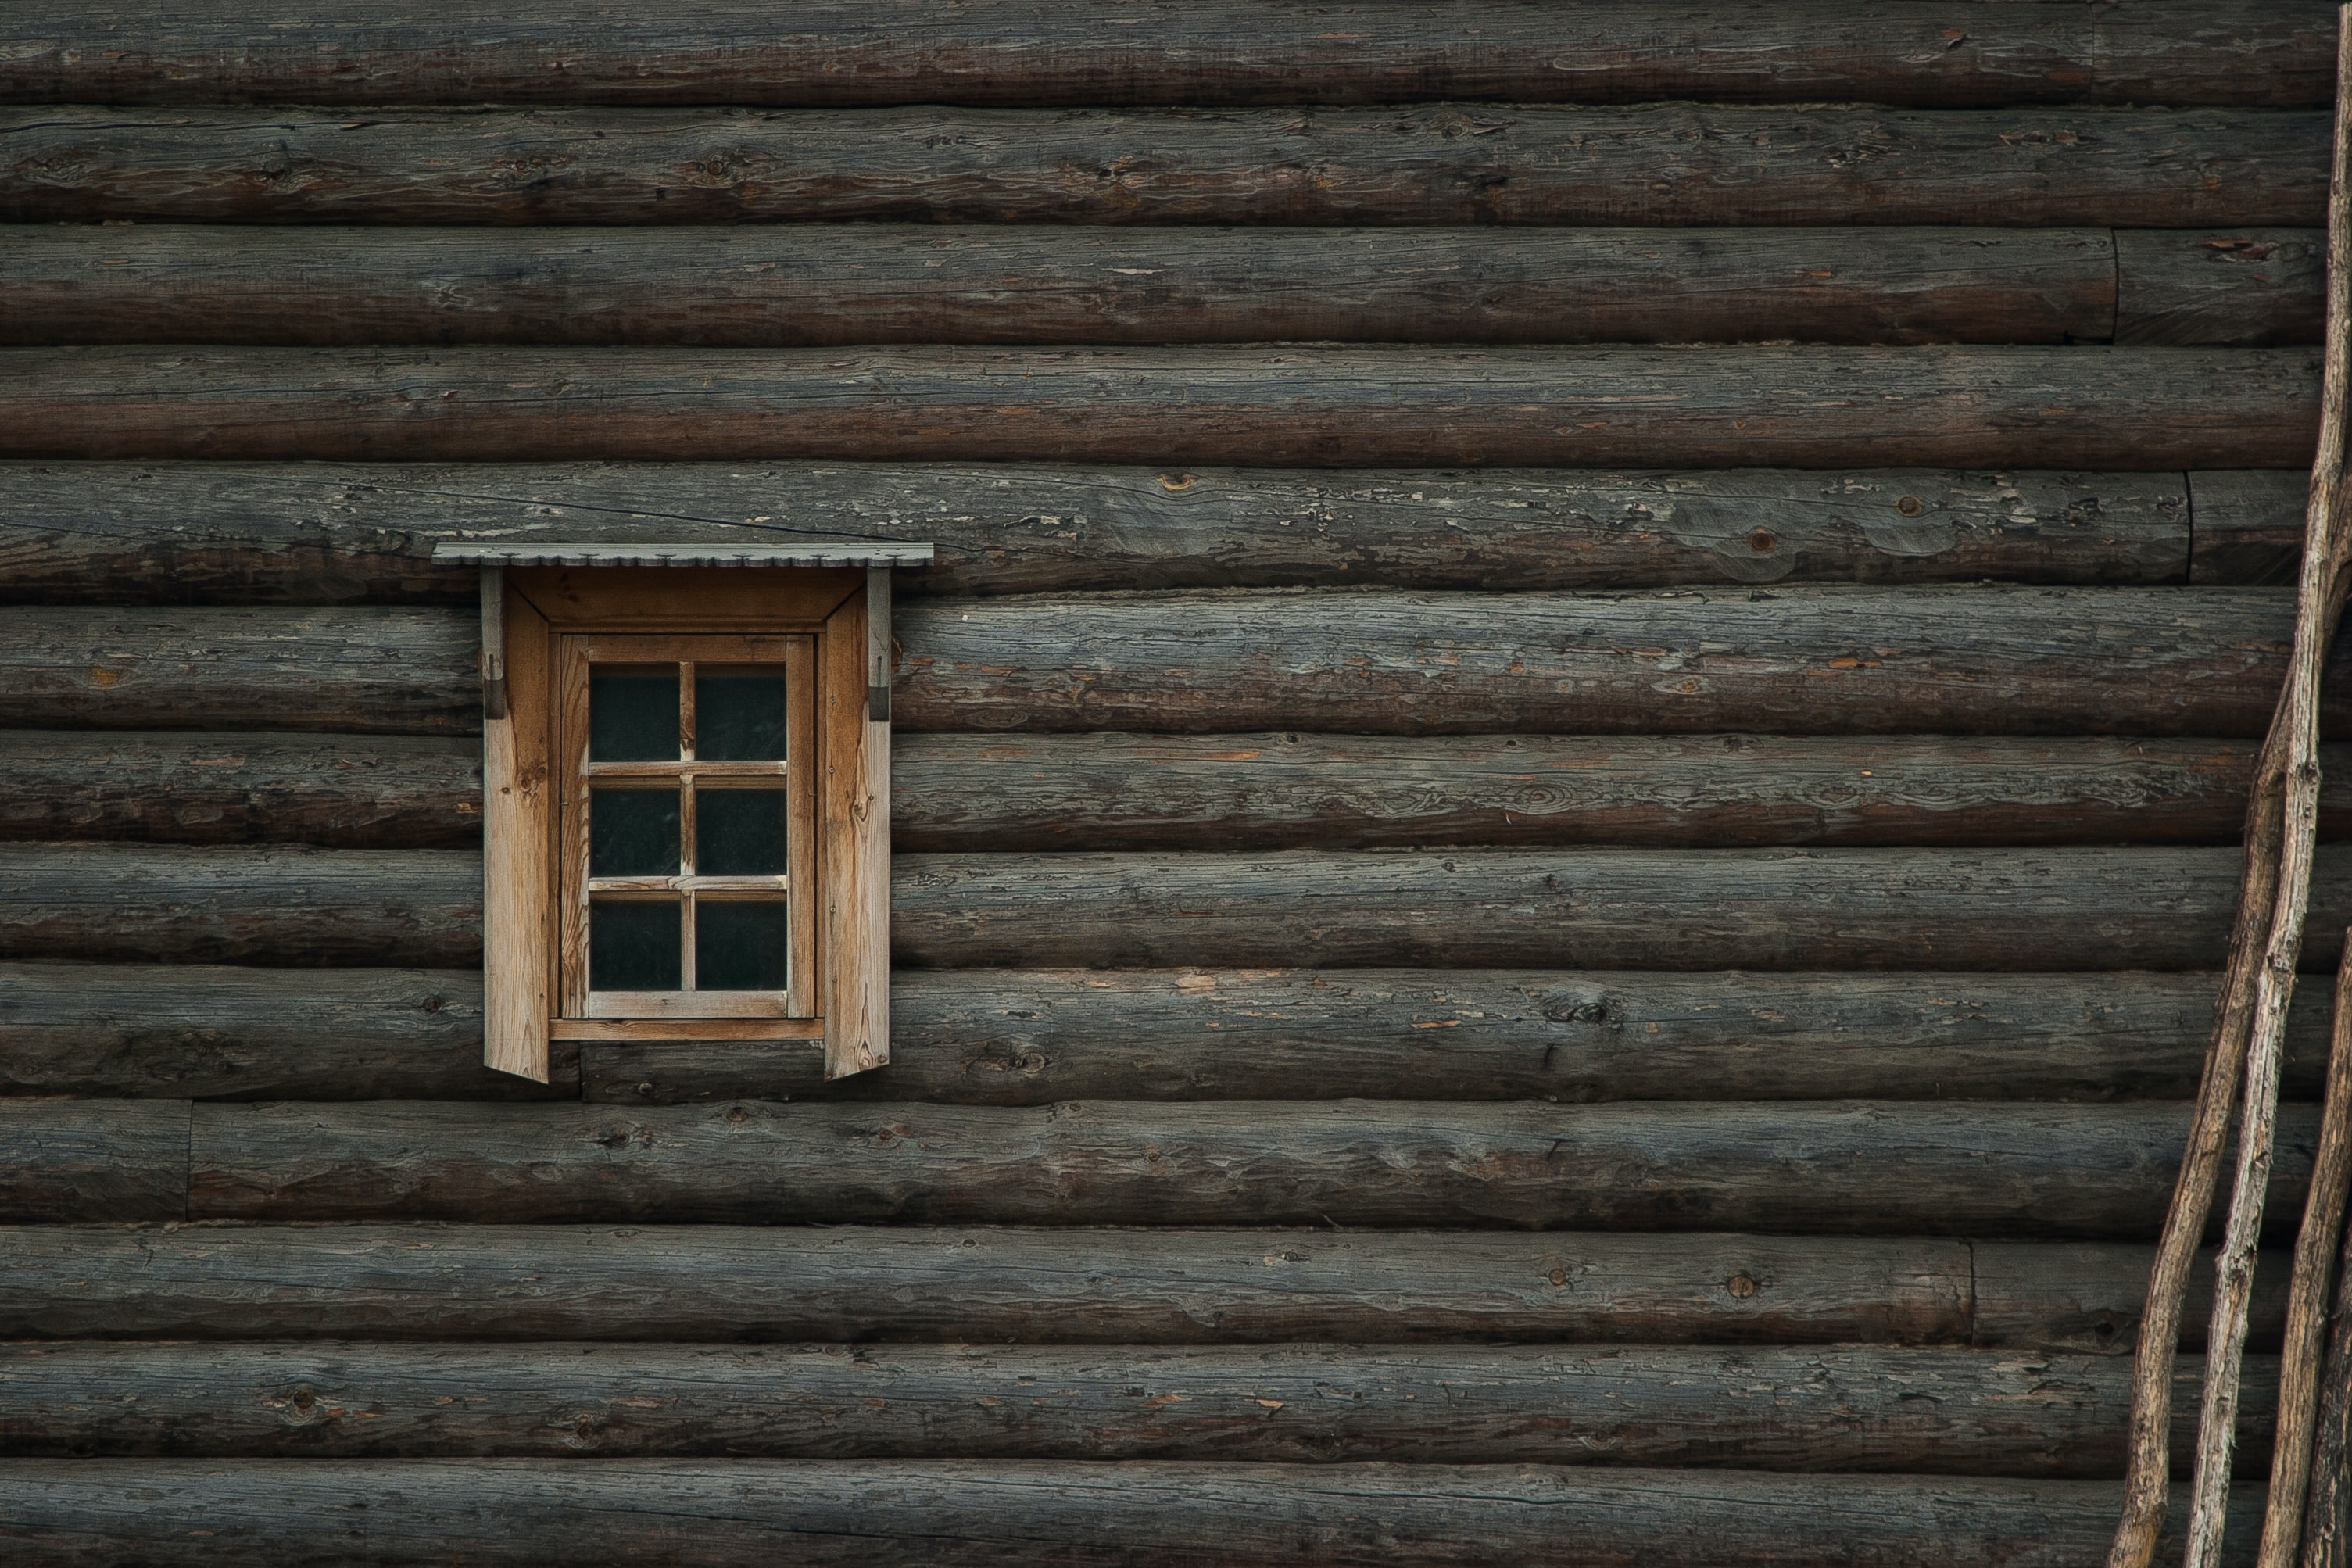 The wall of a log cabin with a small wooden window to the left and some branches leaning up against the wall to the right